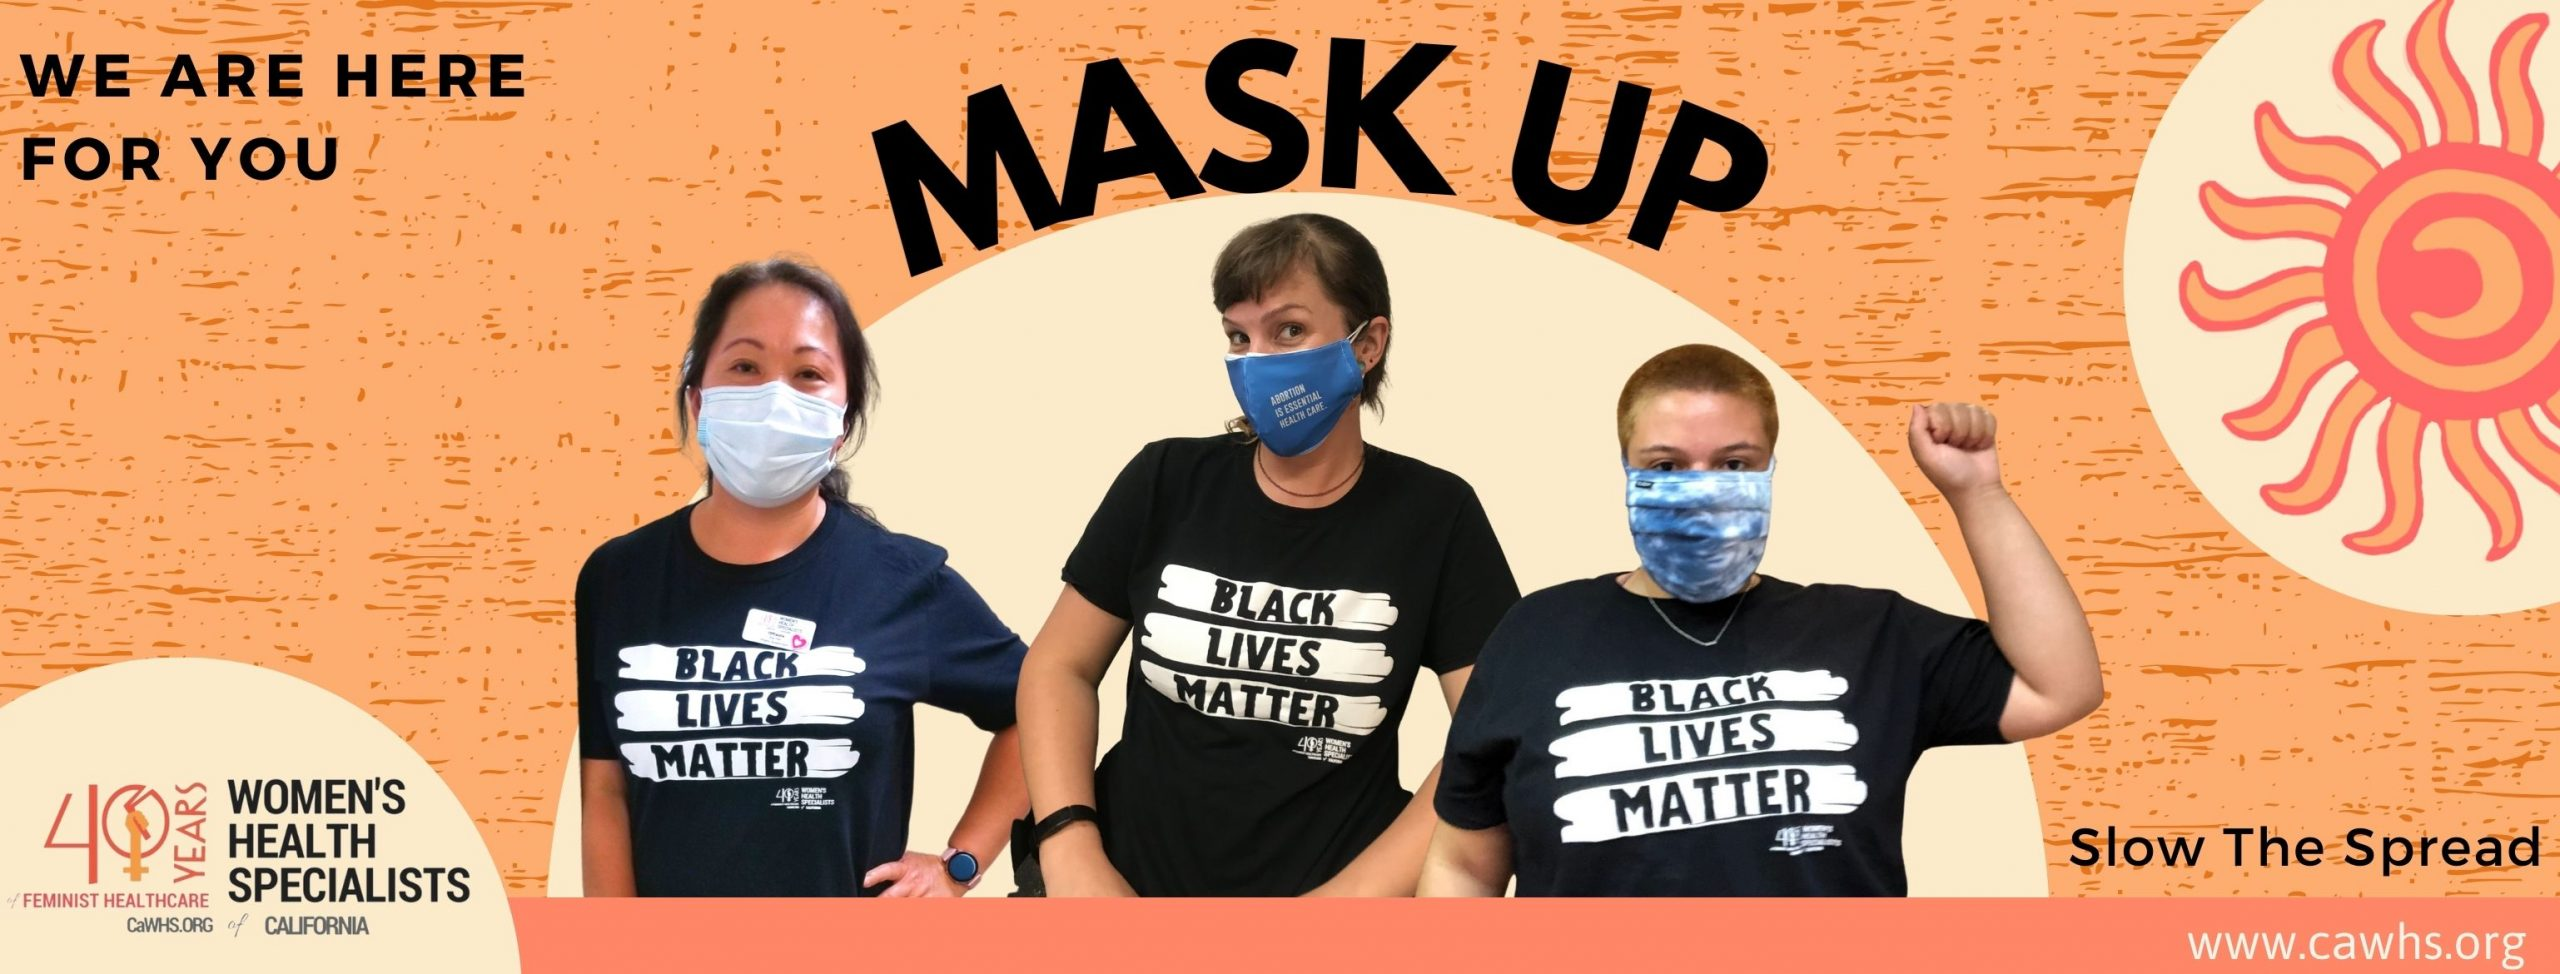 Mask Up FB Cover Photo